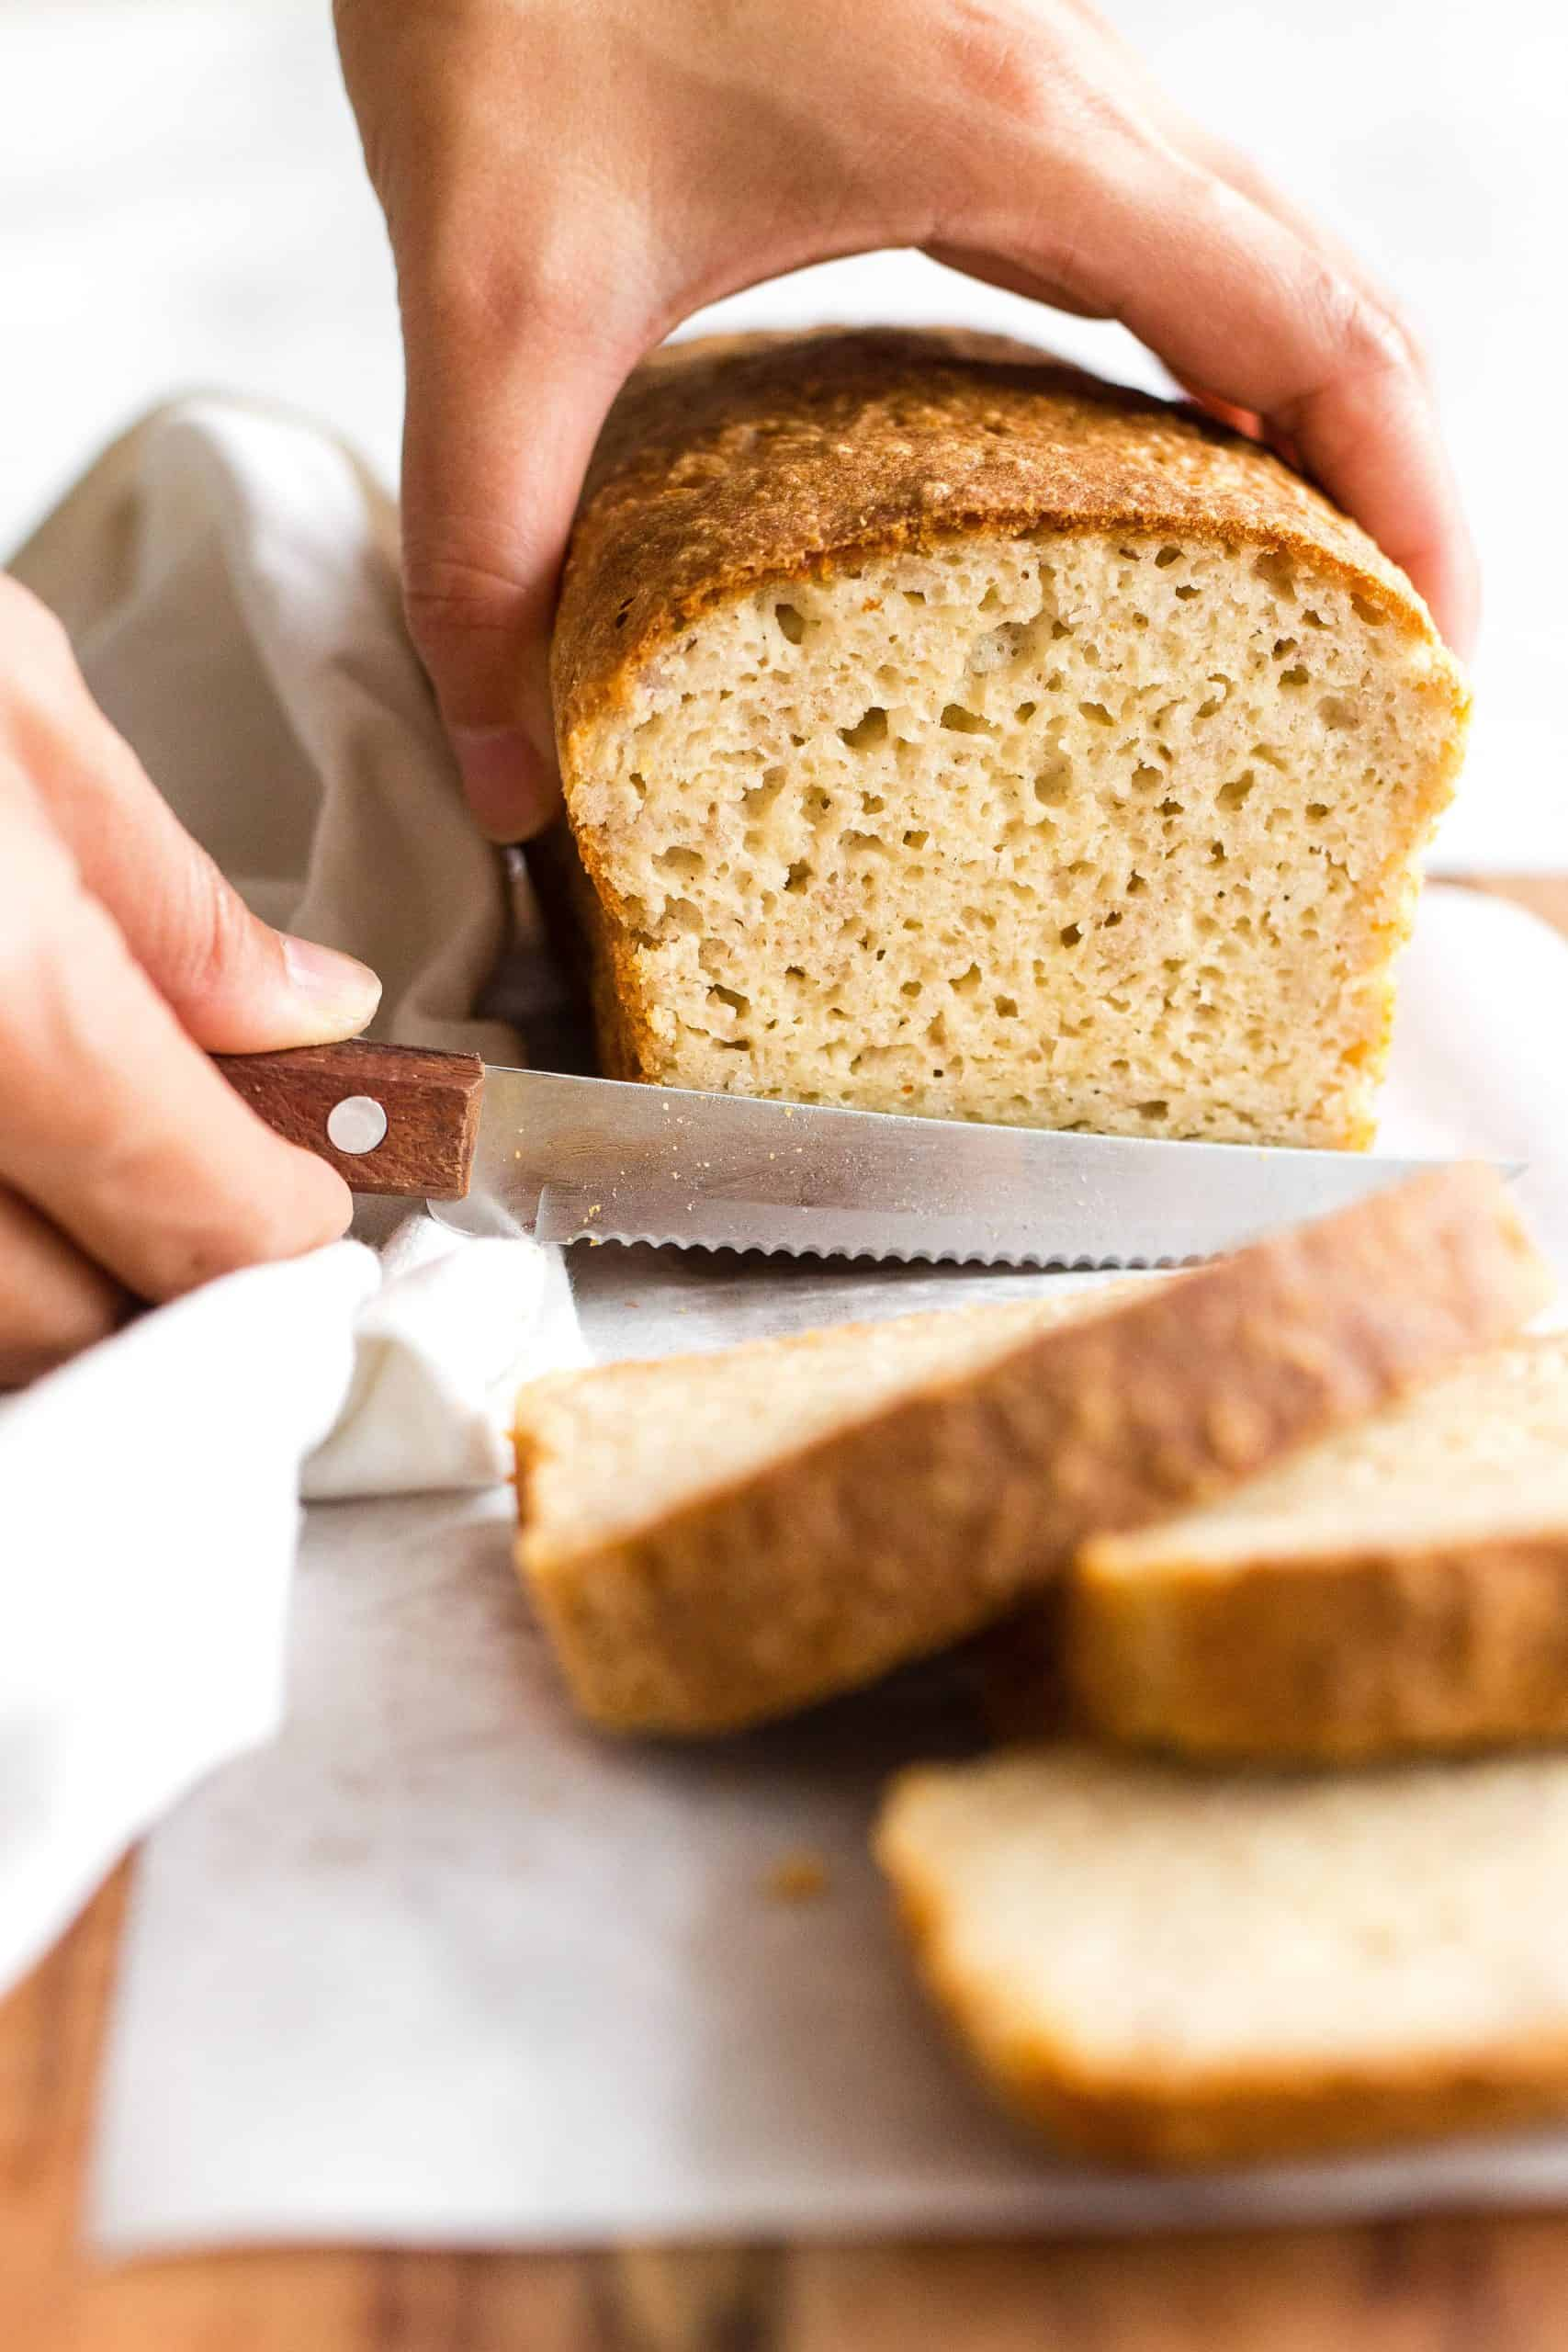 Slicing into a loaf of bread.